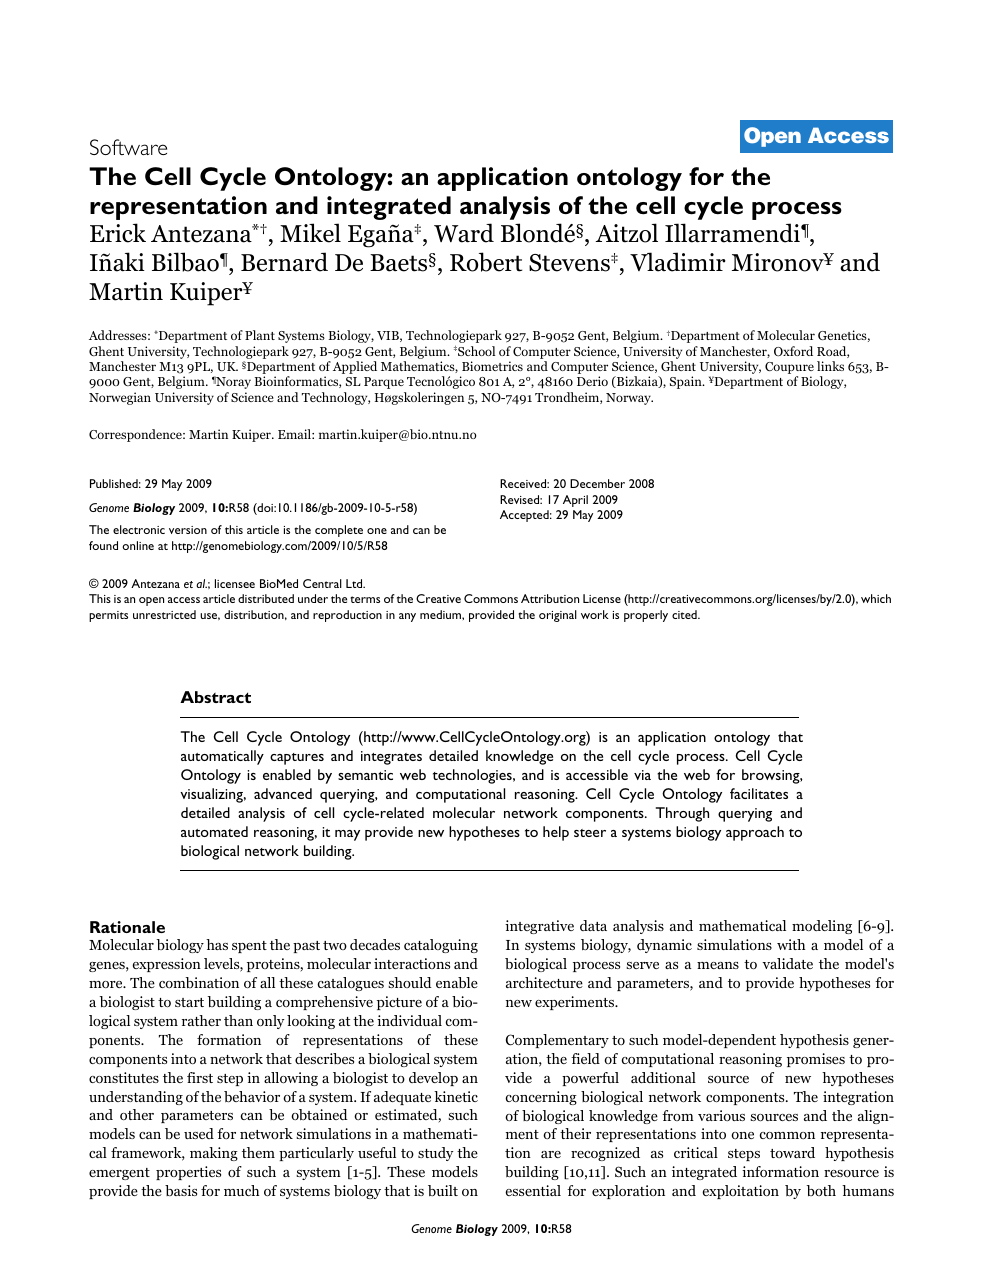 The Cell Cycle Ontology: An application ontology for the